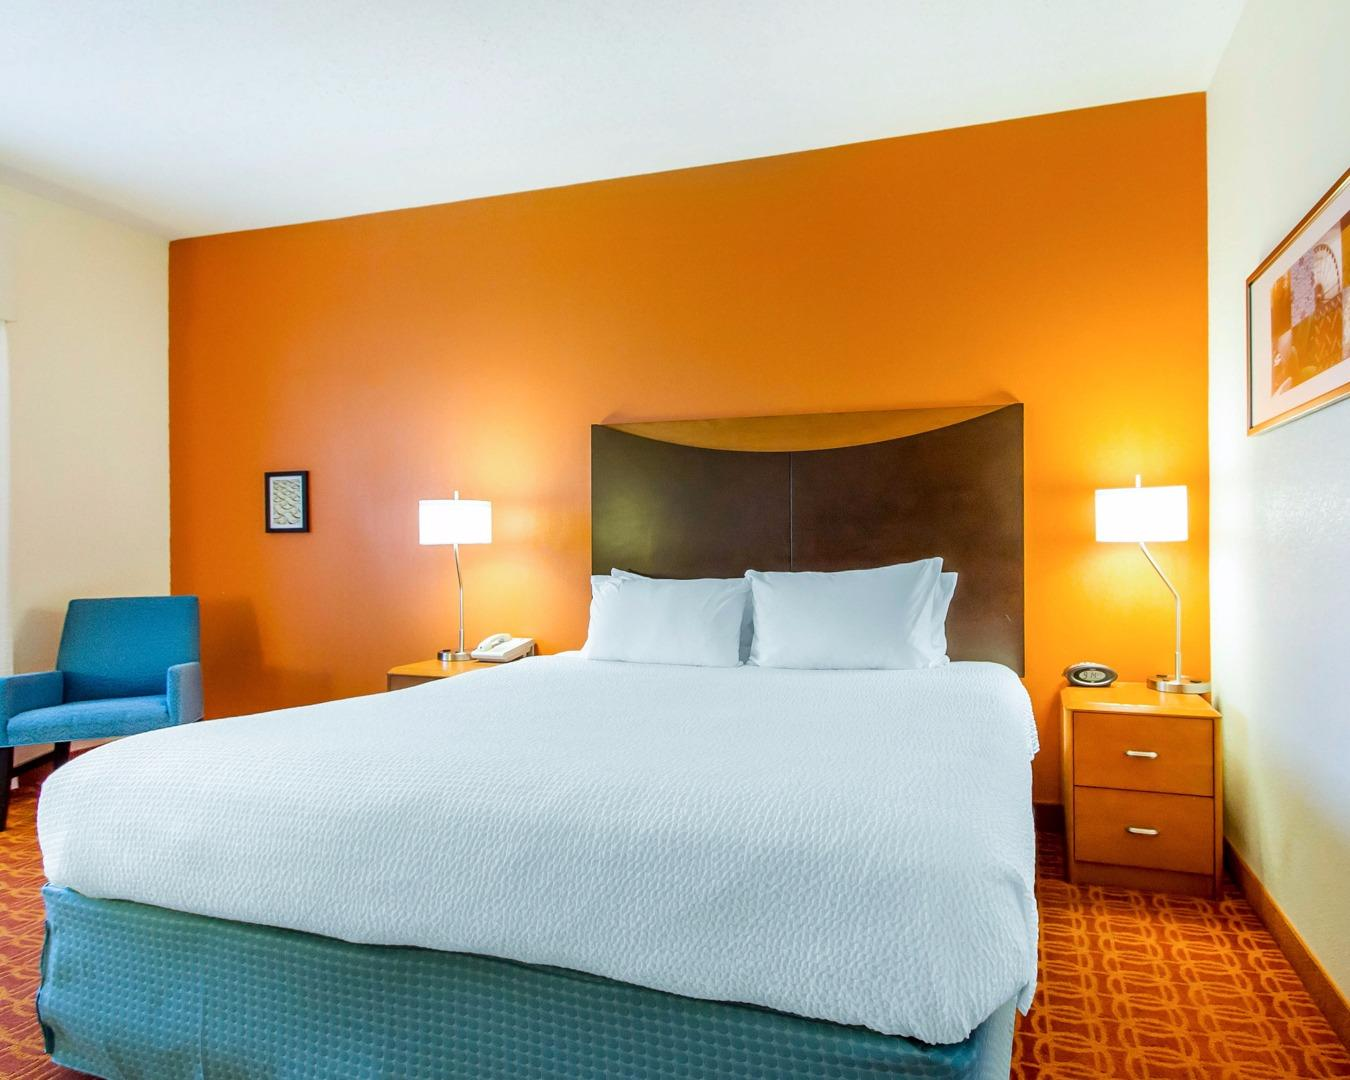 Quality Inn & Suites Keokuk North, Keokuk IA